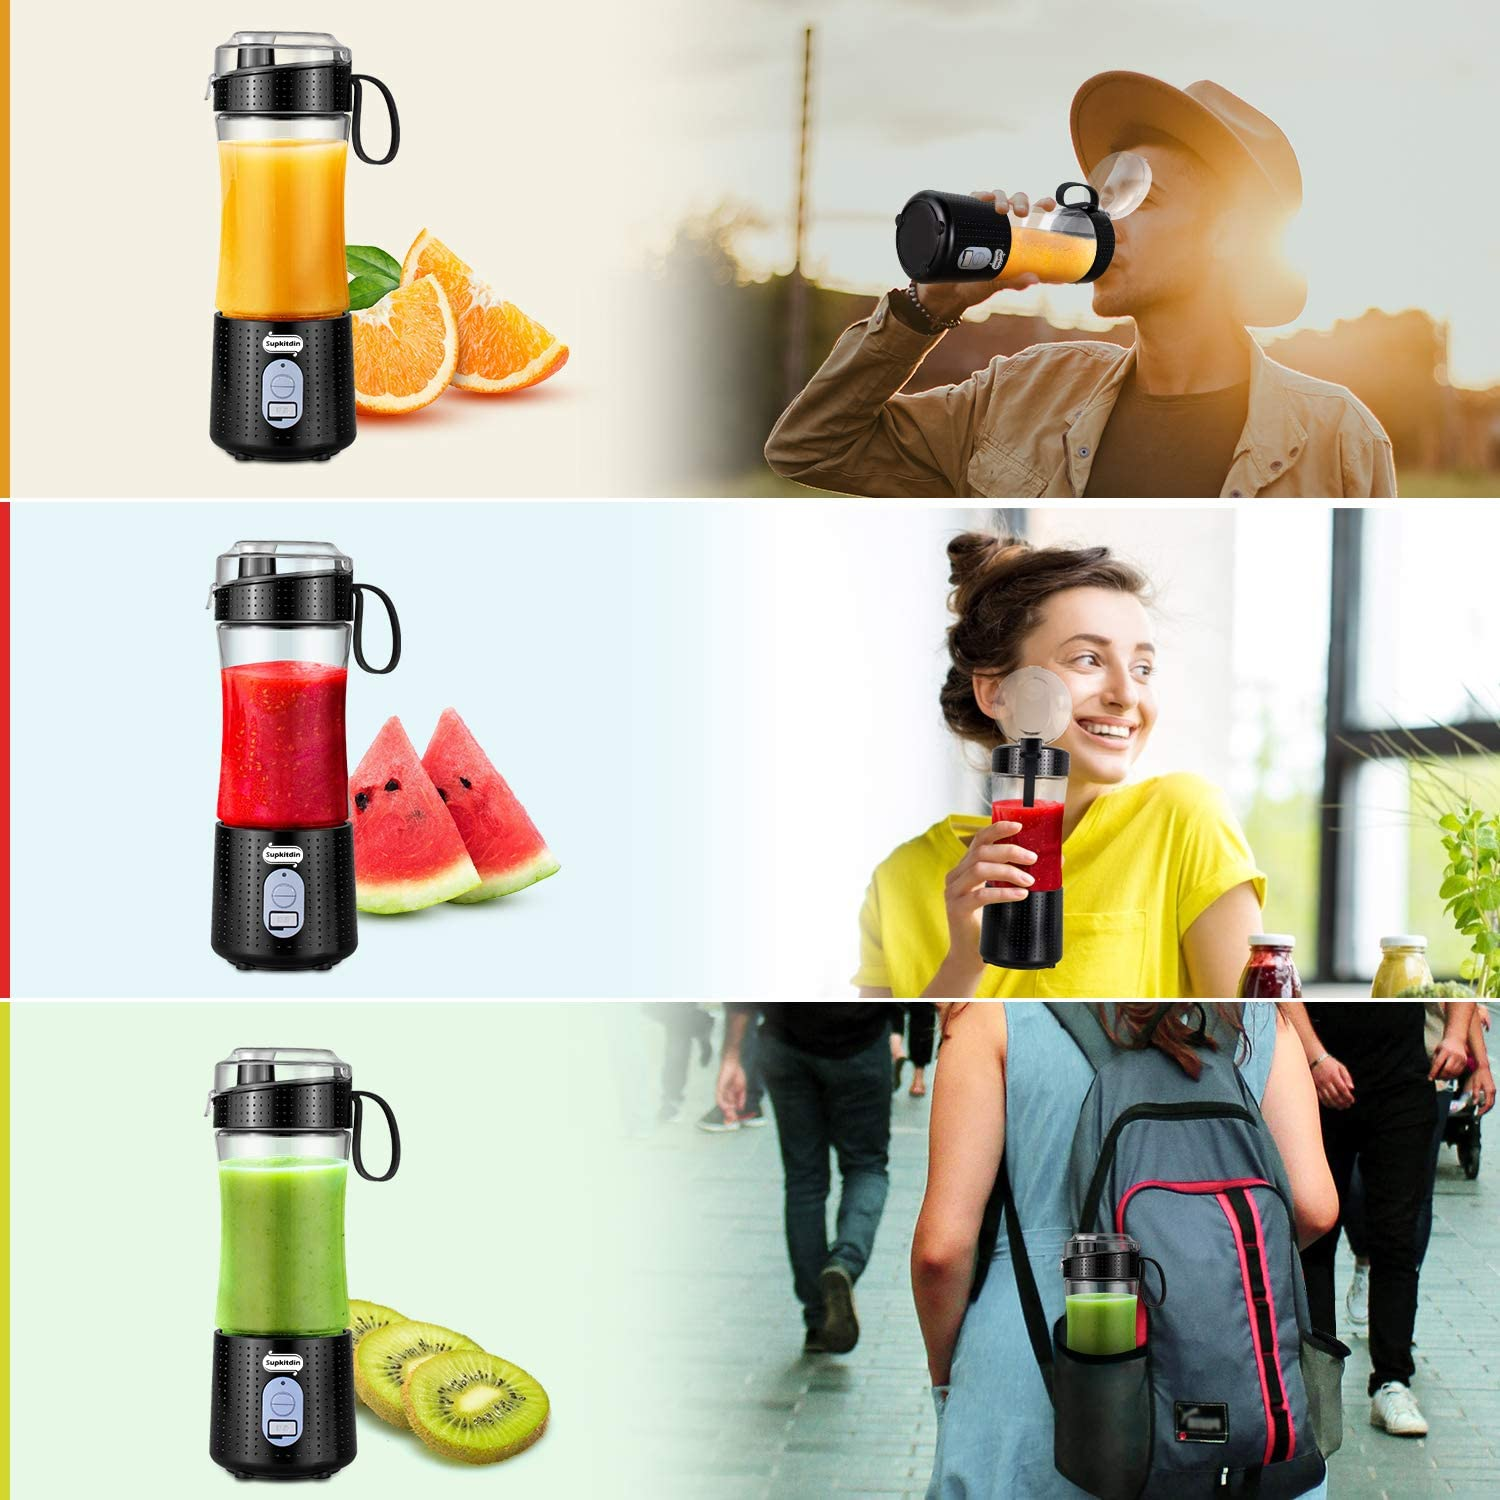 Supkitdin Portable Blender, Personal Mixer Fruit Rechargeable with USB, Mini Blender for Smoothie, Fruit Juice, Milk Shakes, 380ml, Six 3D Blades for Great Mixing (Black): Kitchen & Dining